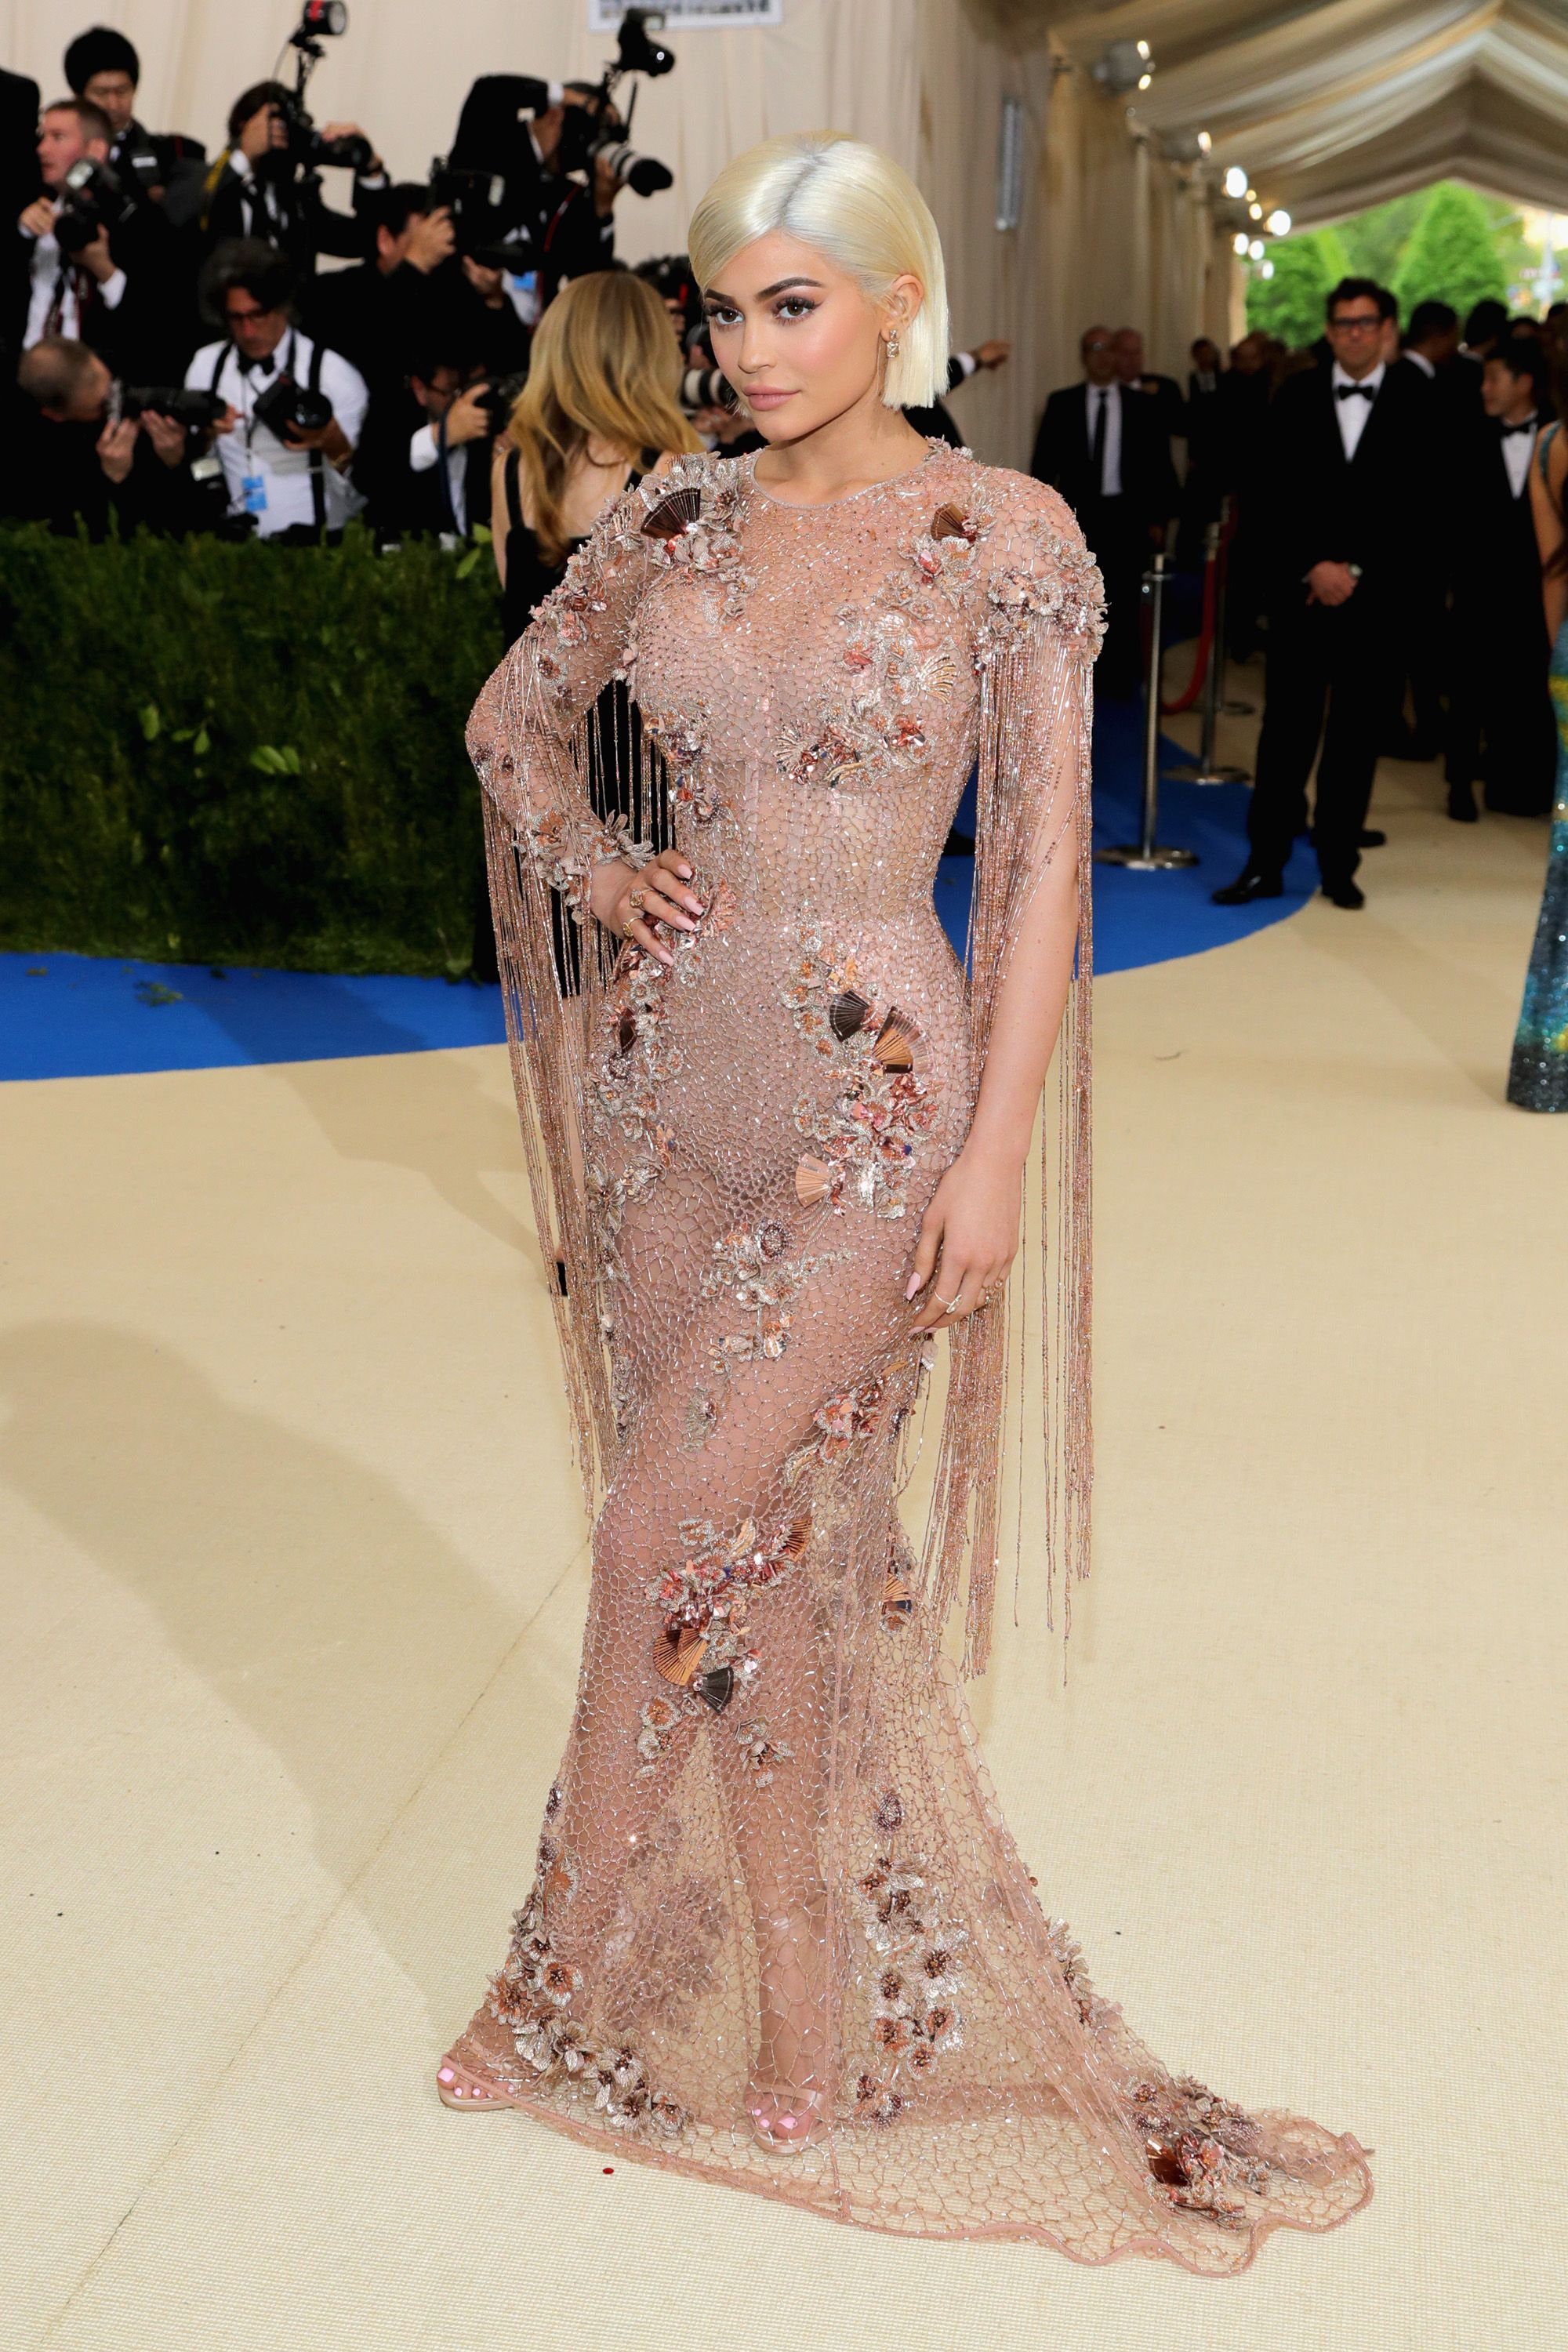 Kylie Jenner in her nude Versace designed at the Met Gala 2017